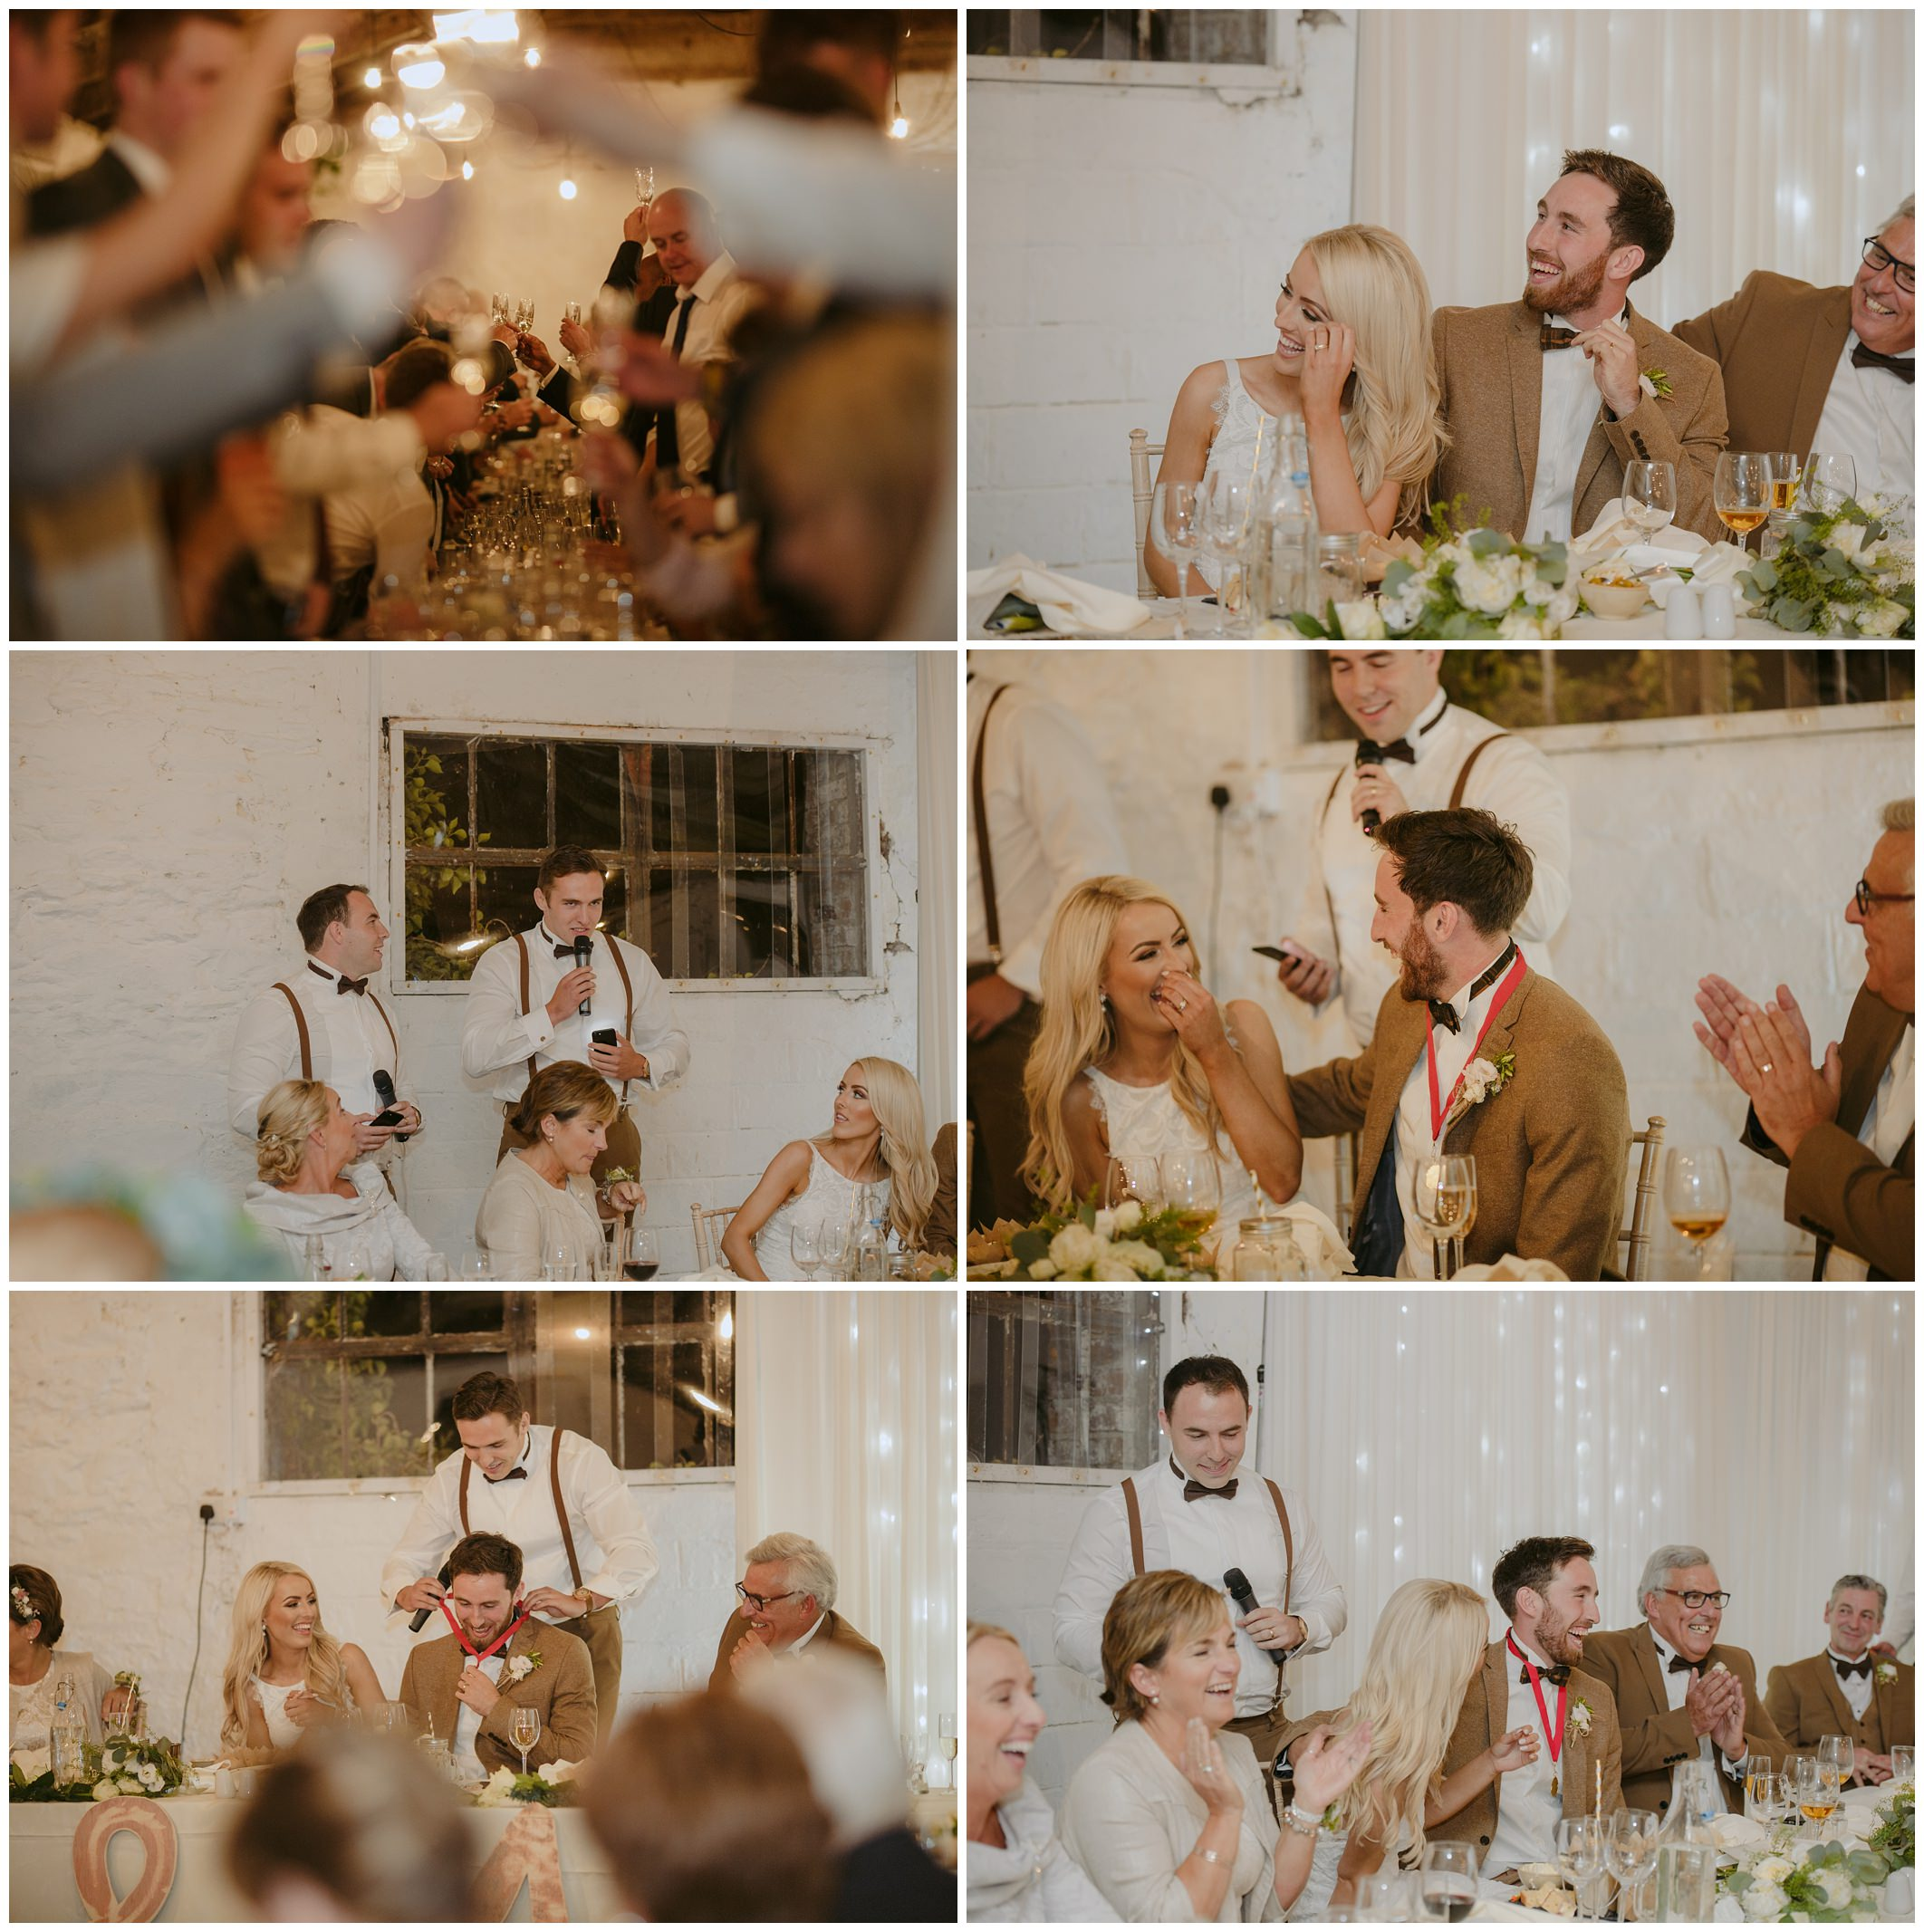 tara_neil_the_mill_alternative_quirky_wedding_jude_browne_photography_0202.jpg